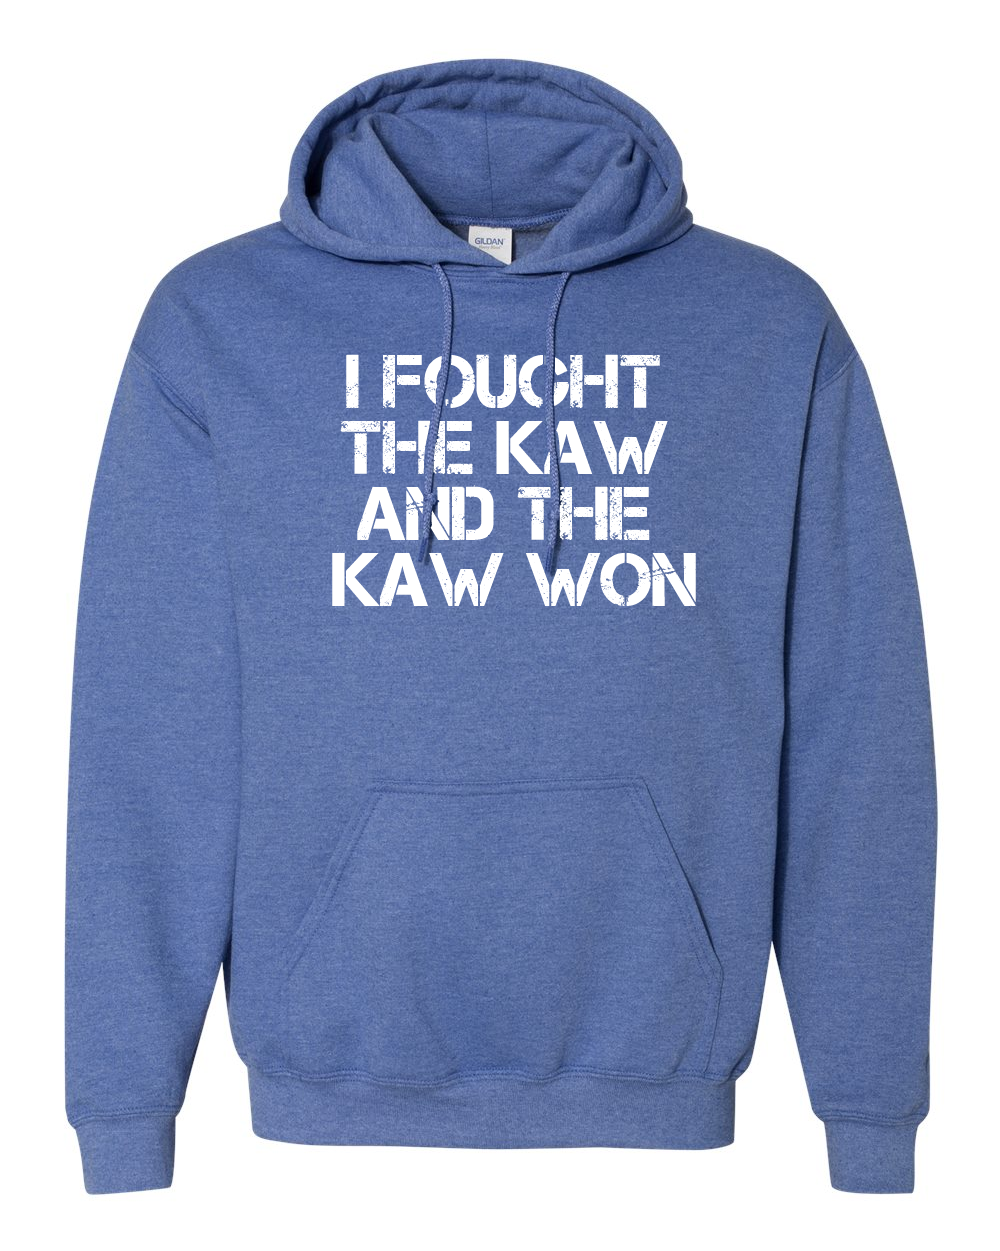 The Kaw Won - Hoody